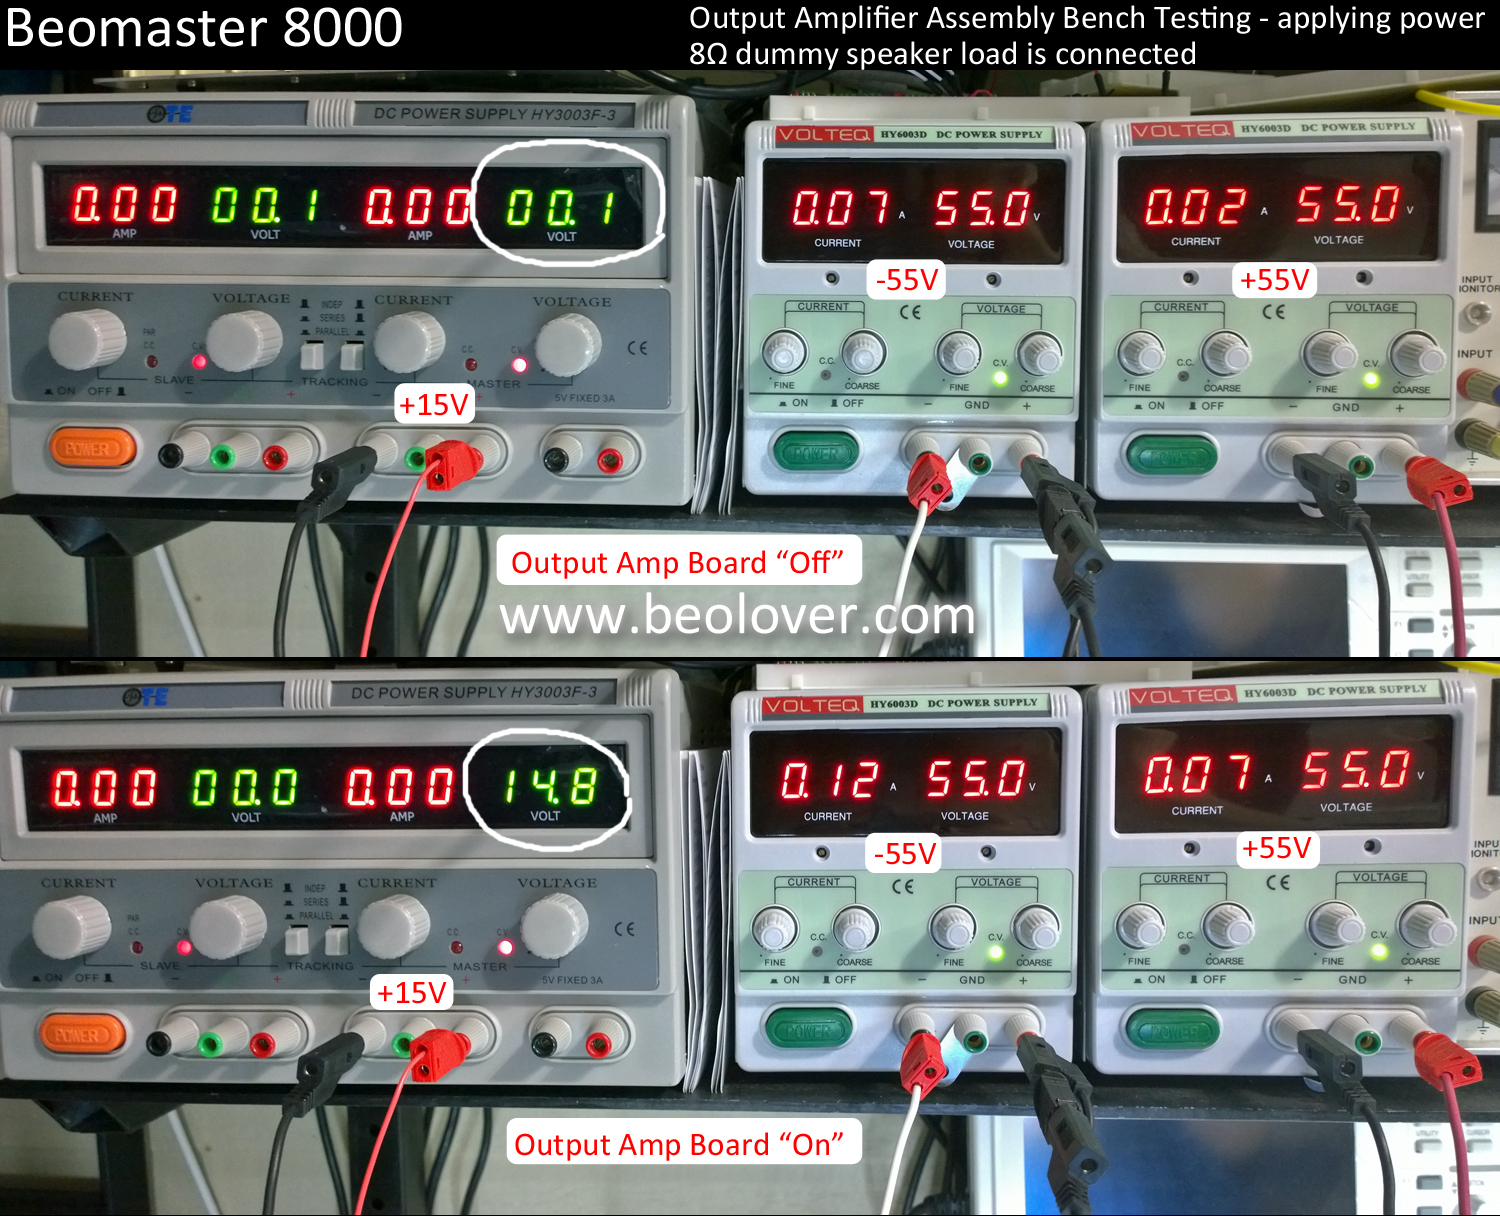 beolover: Beomaster 8000 - Output Amplifier Bench Testing Review